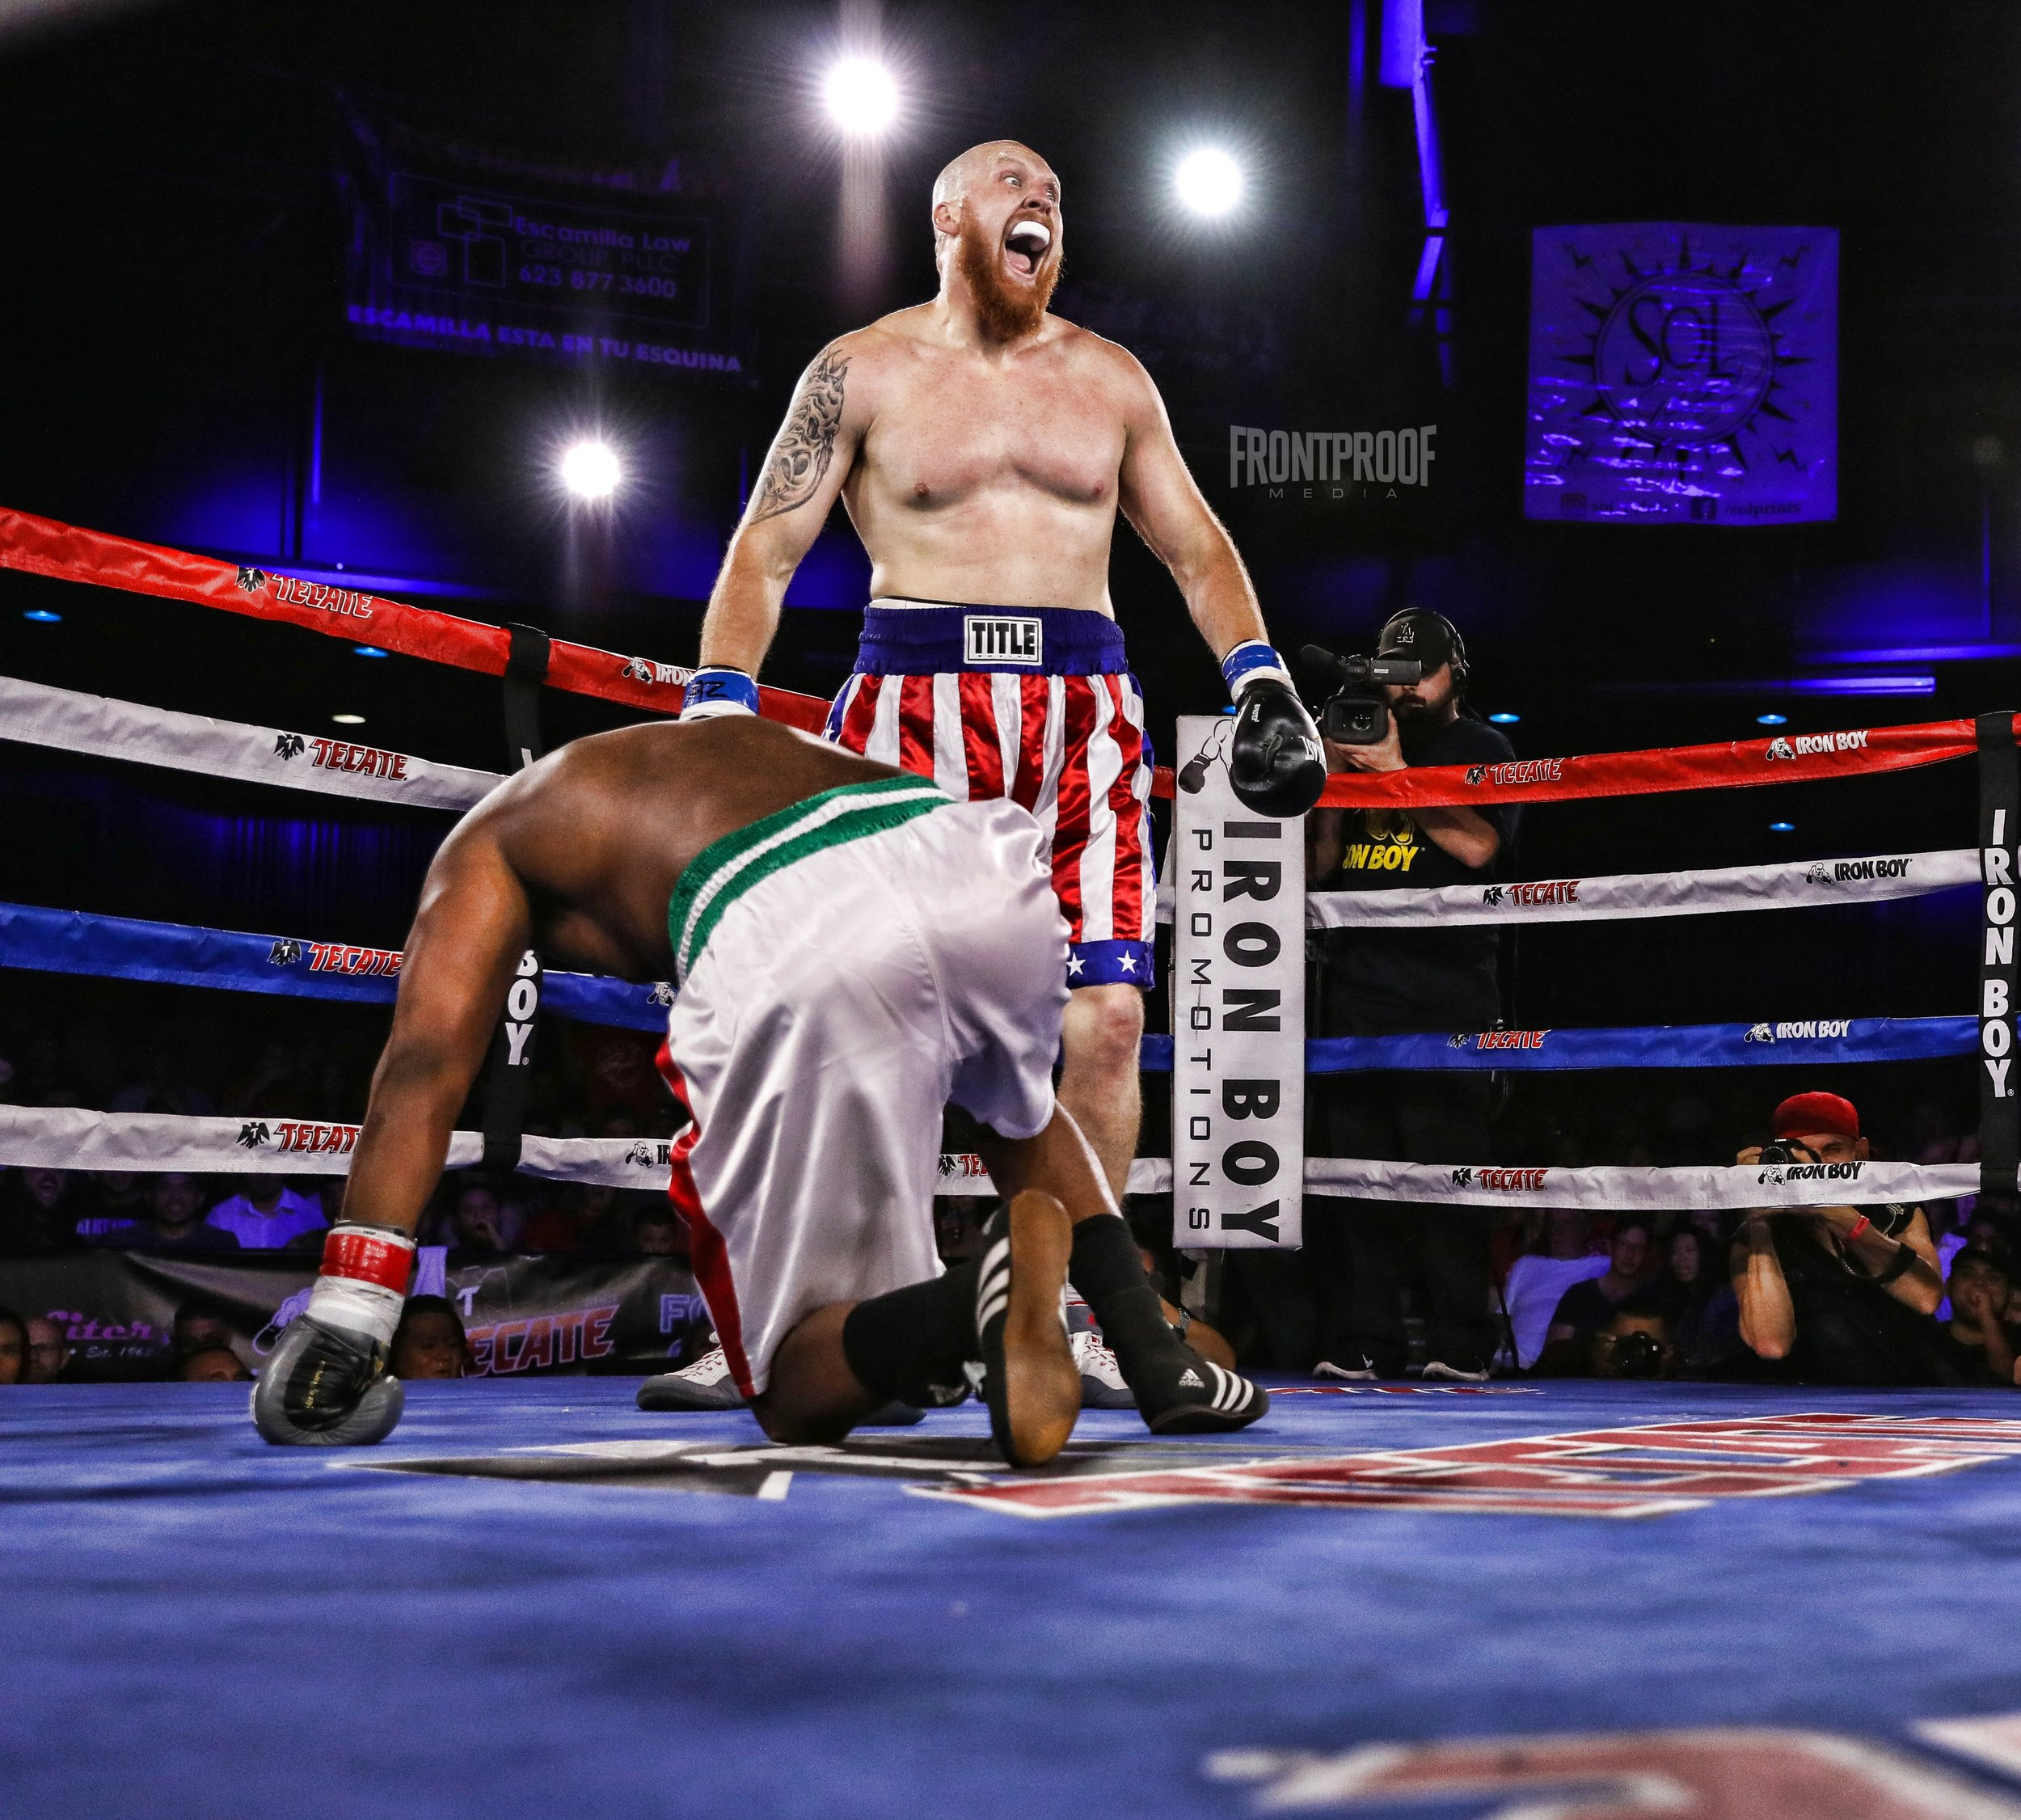 Adam Stewart (red, white & blue shorts) stands over his opponent, Michael Smith, after a first round knockdown that gave him the victory. Photo: Kelly Owen/Frontproof Media.